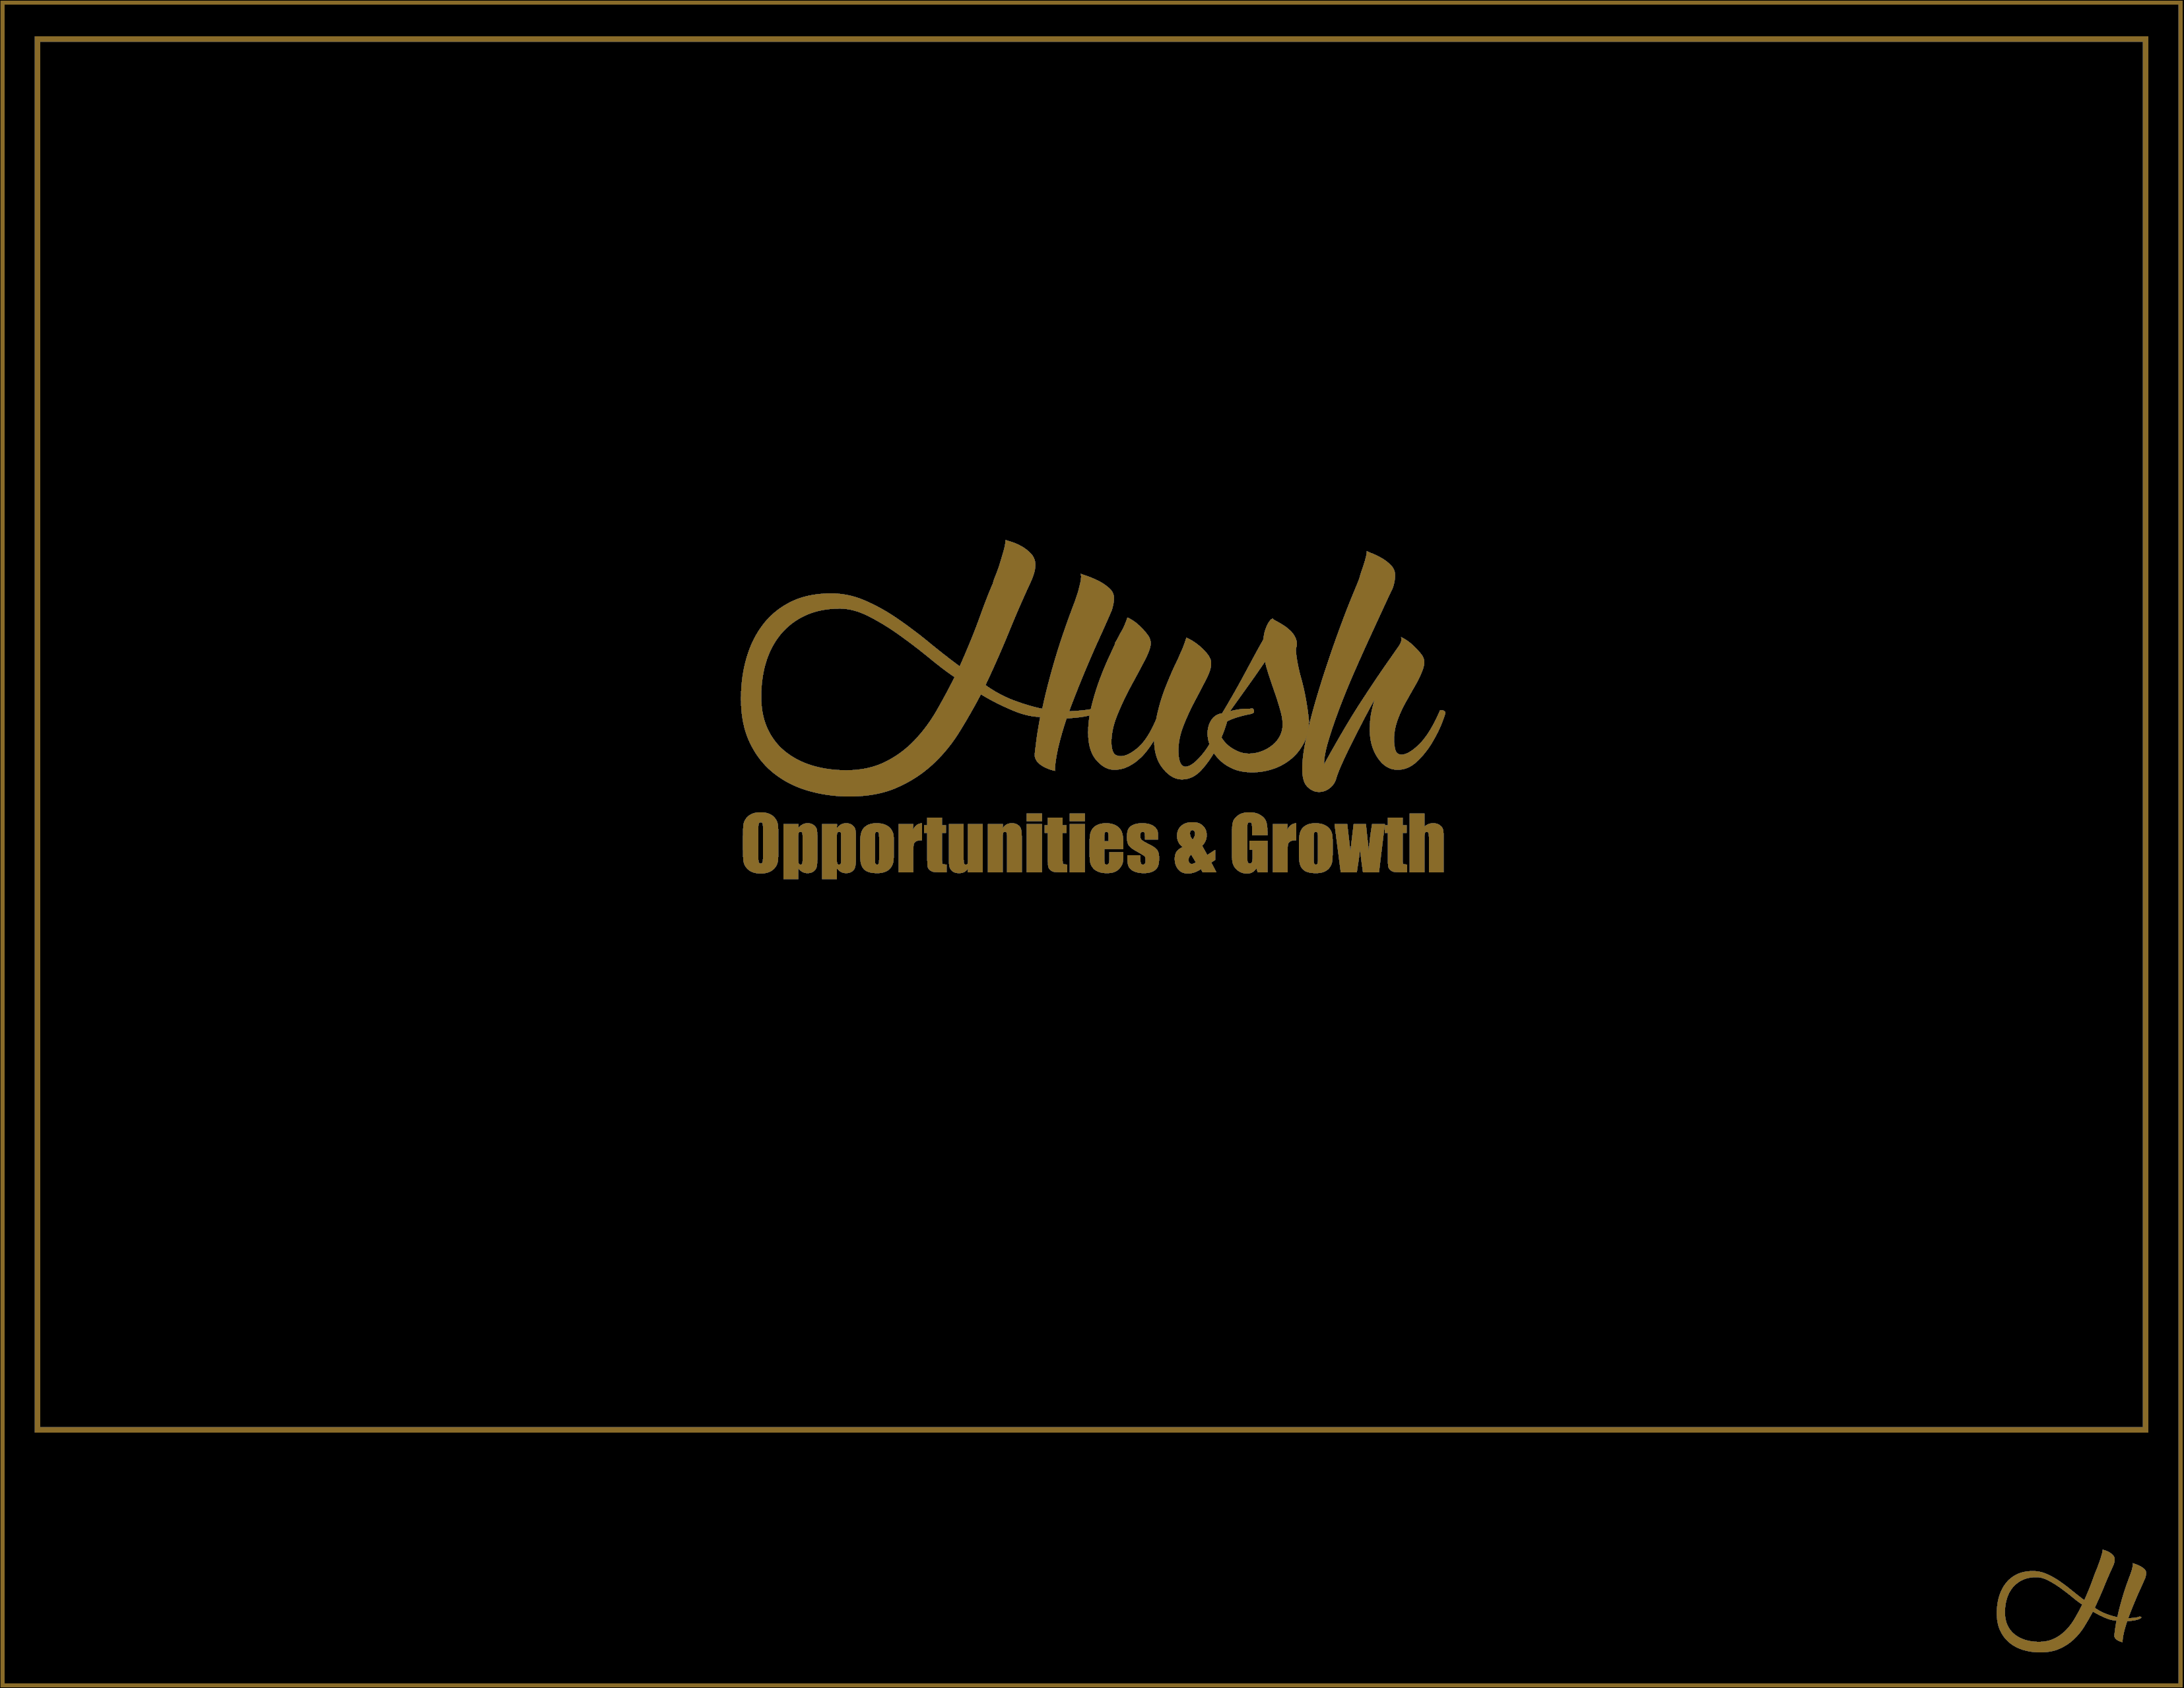 Hush Opportunities & Growth